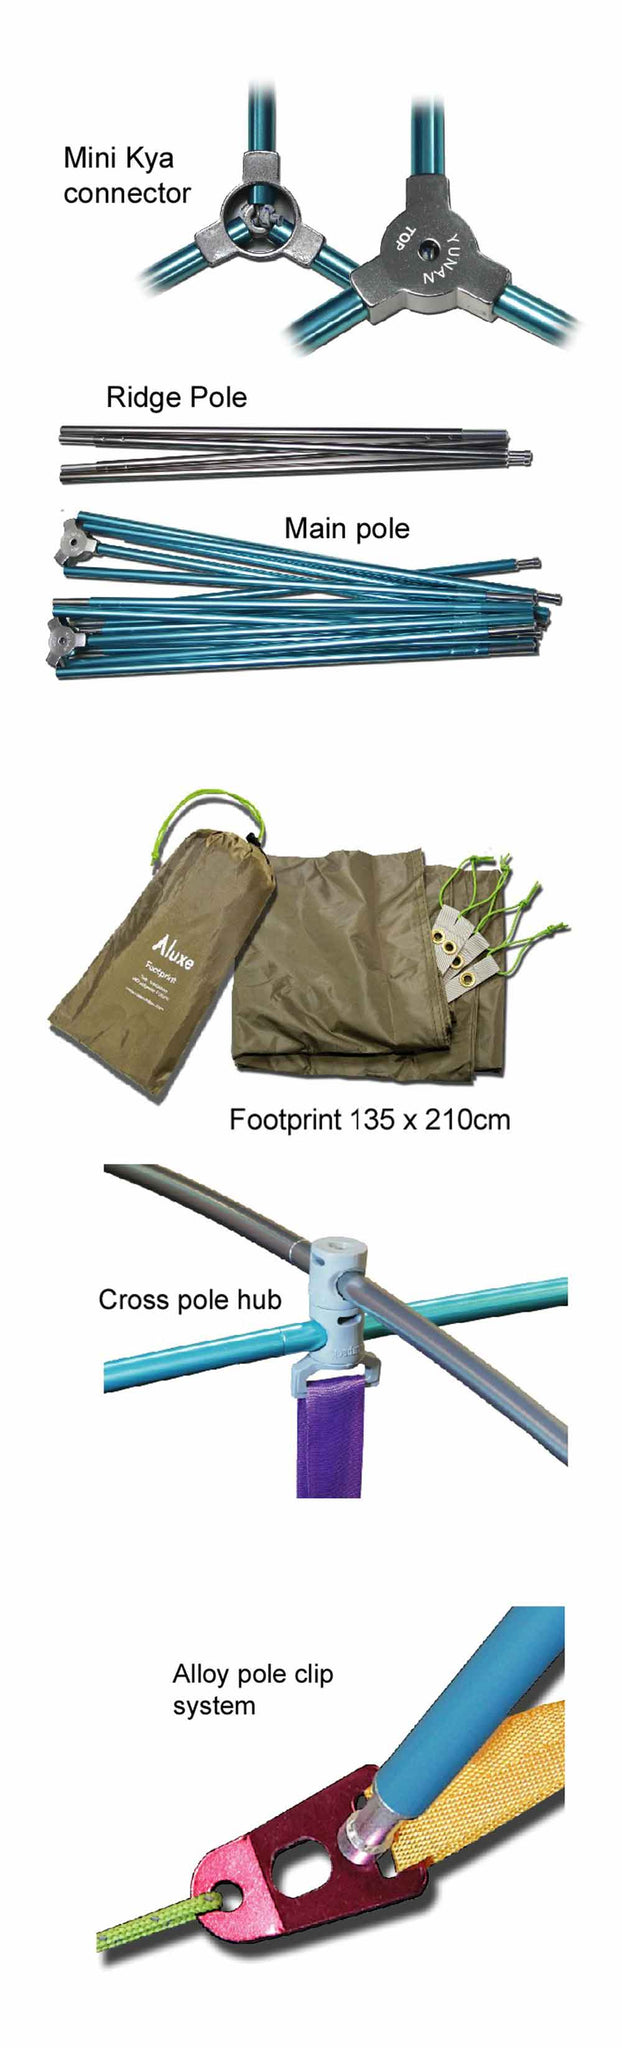 Habitat NX Tent Poles, Clips and Footprint